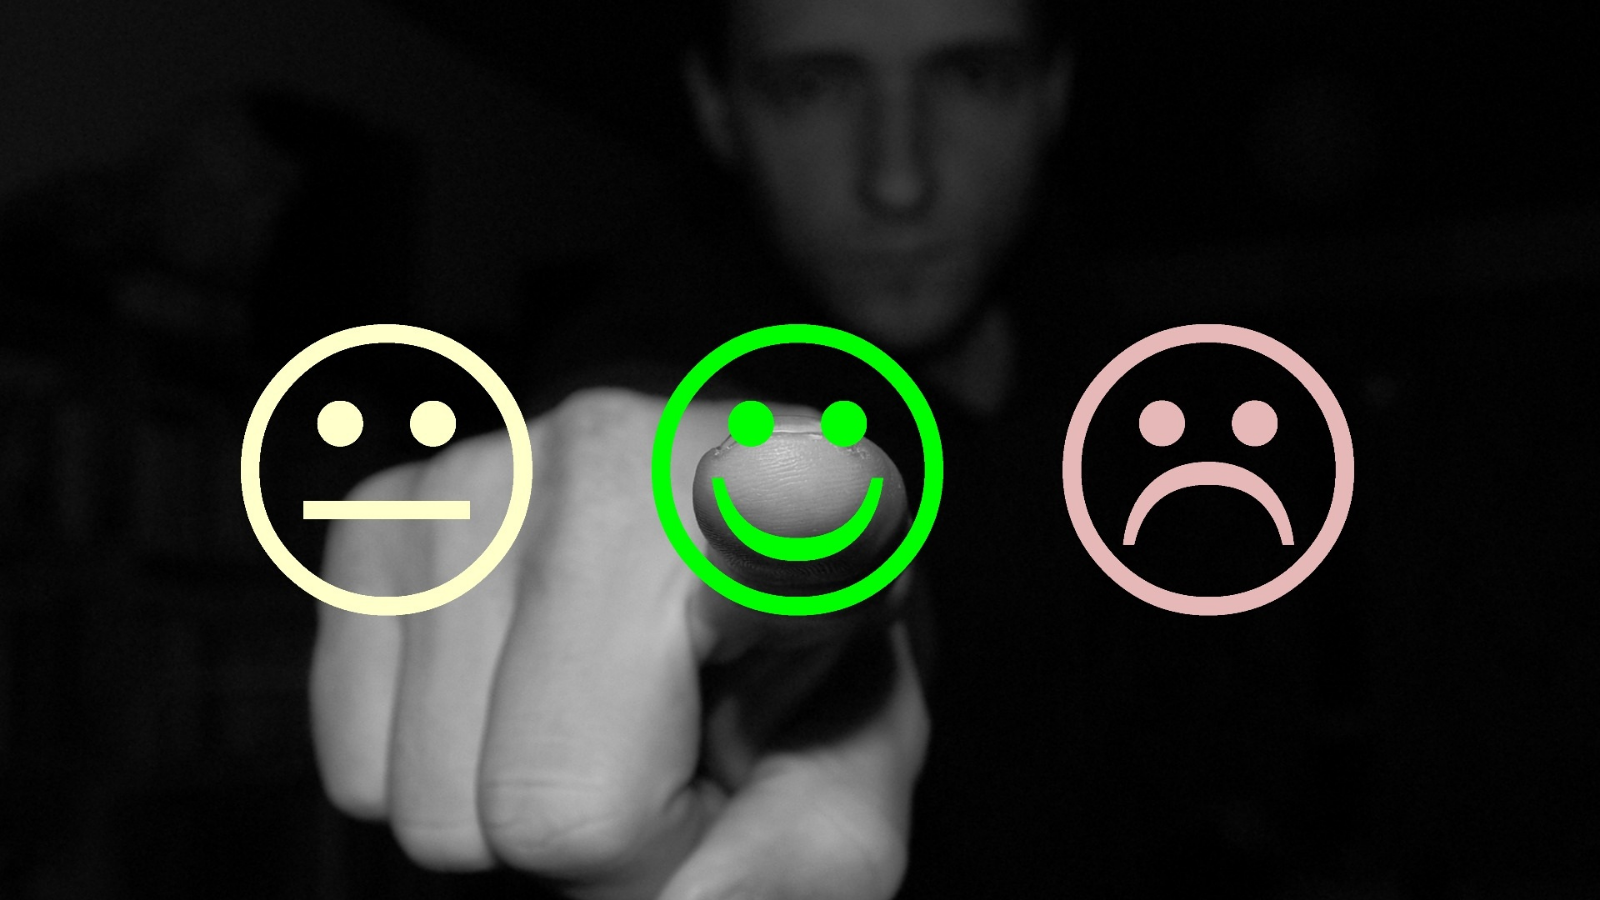 Finger selecting a sad, happy or neutral faces